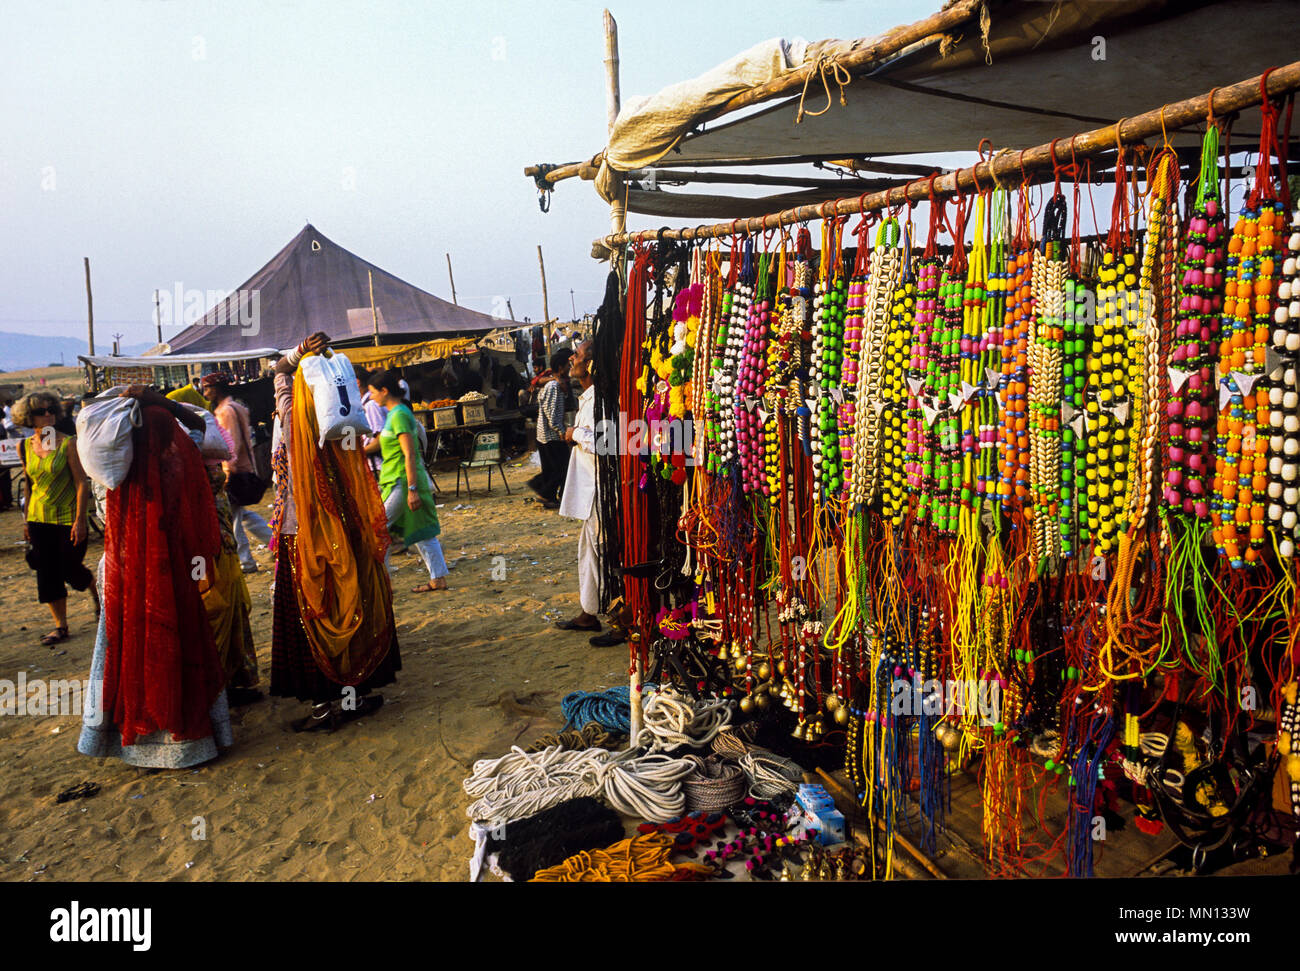 Pushkar, Rajasthan, India- May 23, 2008: Tourists at a necklaces, beads, jewelry, gemstones, bracelets, earrings, bangles, devotional objects at fair. - Stock Image